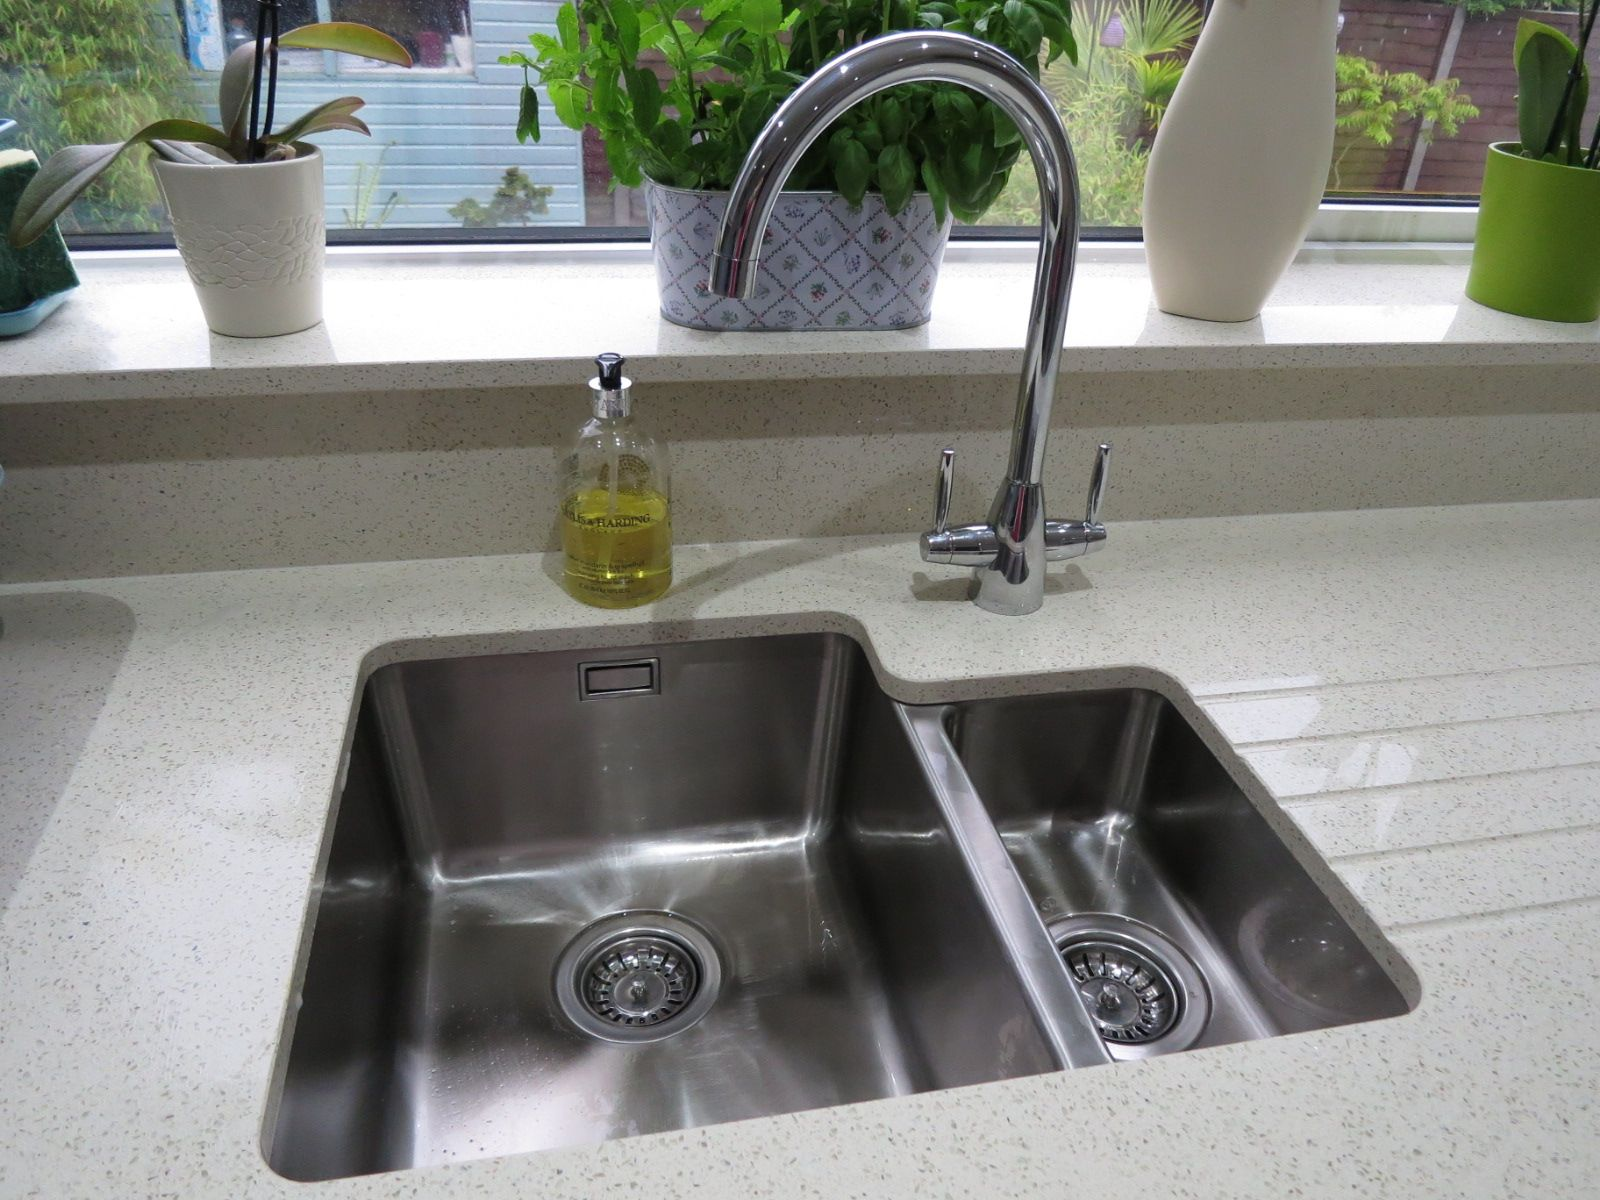 Bluci Orbit 01 Undermount 1 5 Bowl Kitchen Sink With Tap